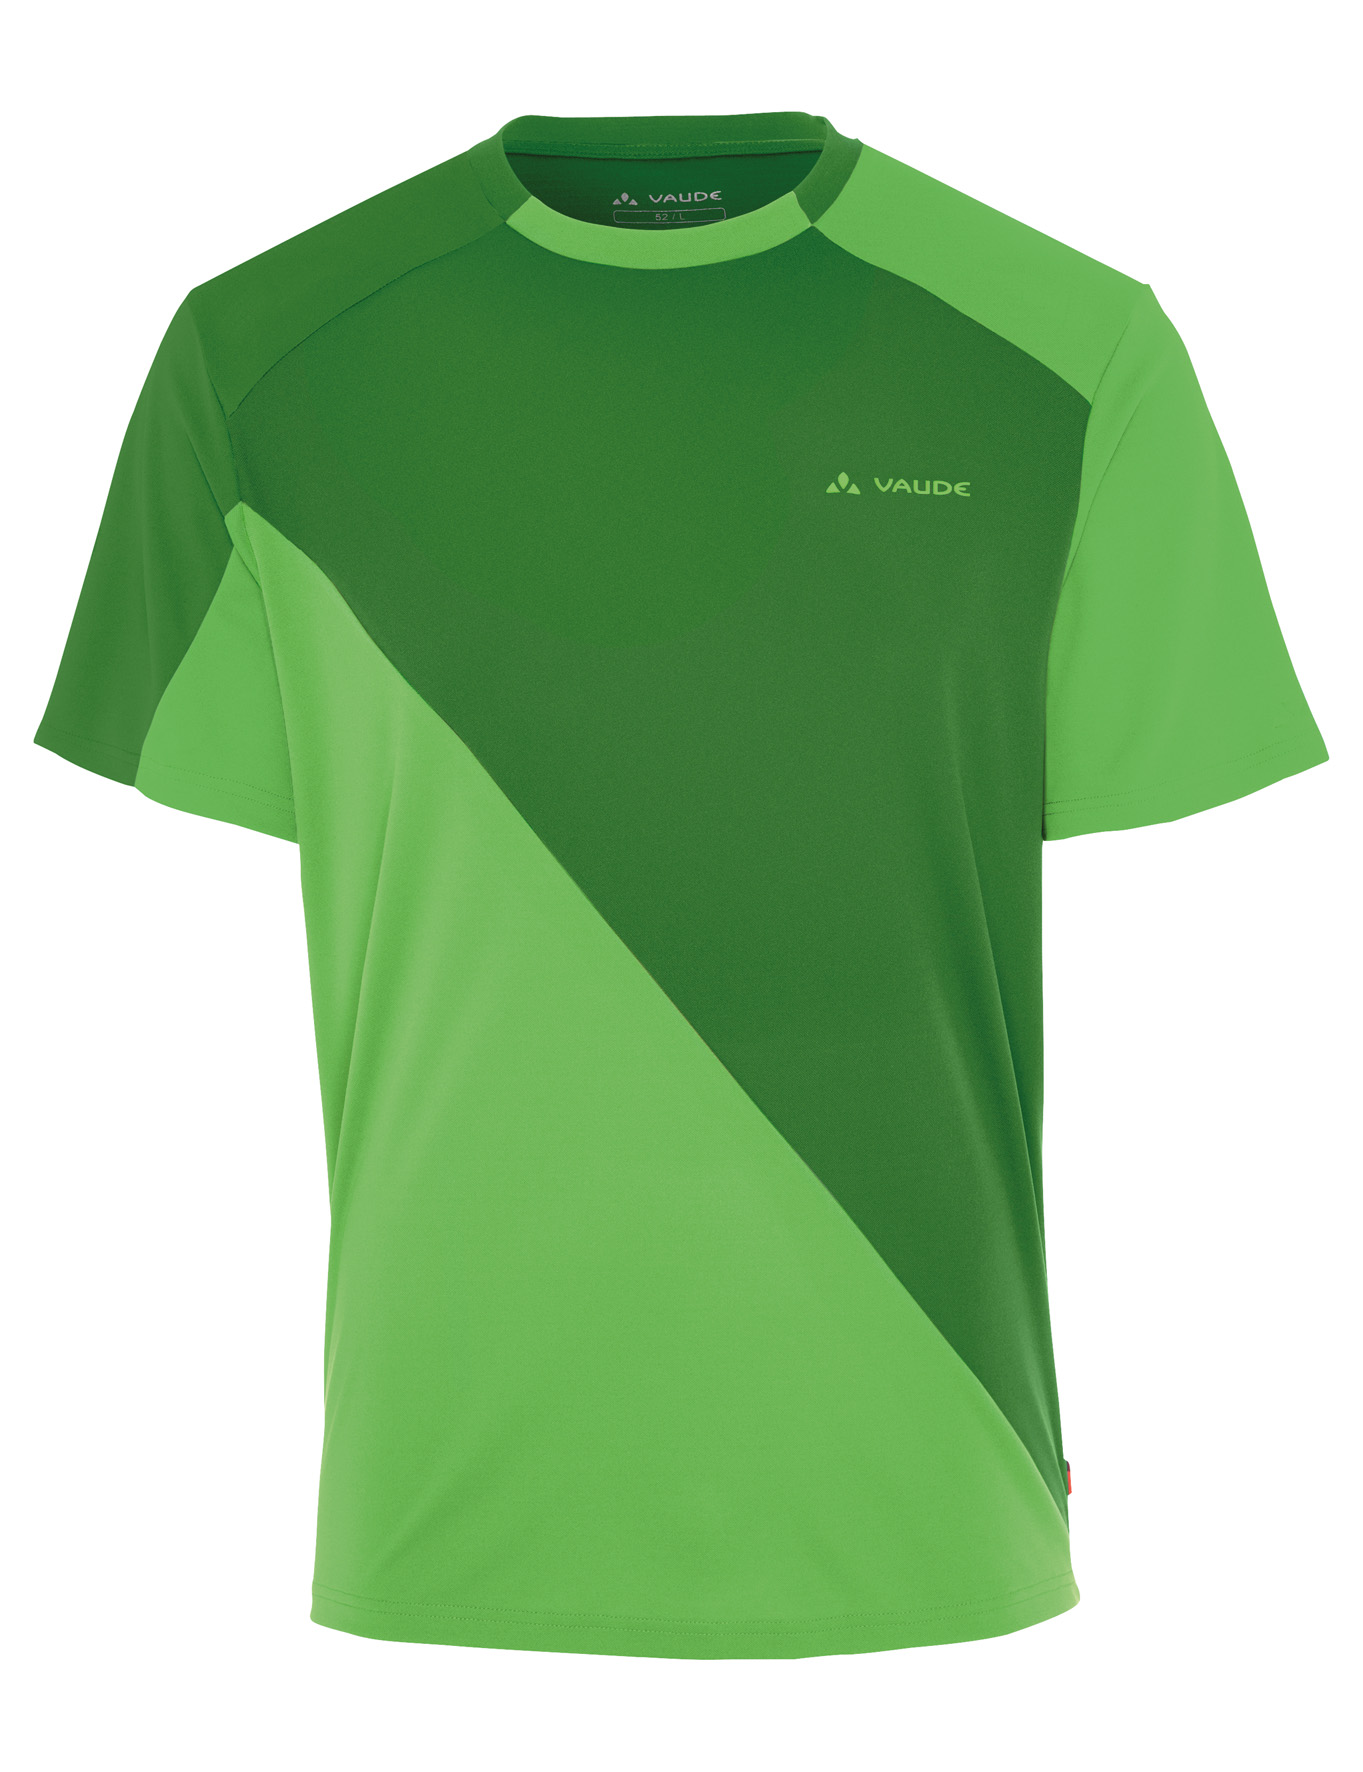 VAUDE Men´s Moab Shirt parrot green Größe S - schneider-sports